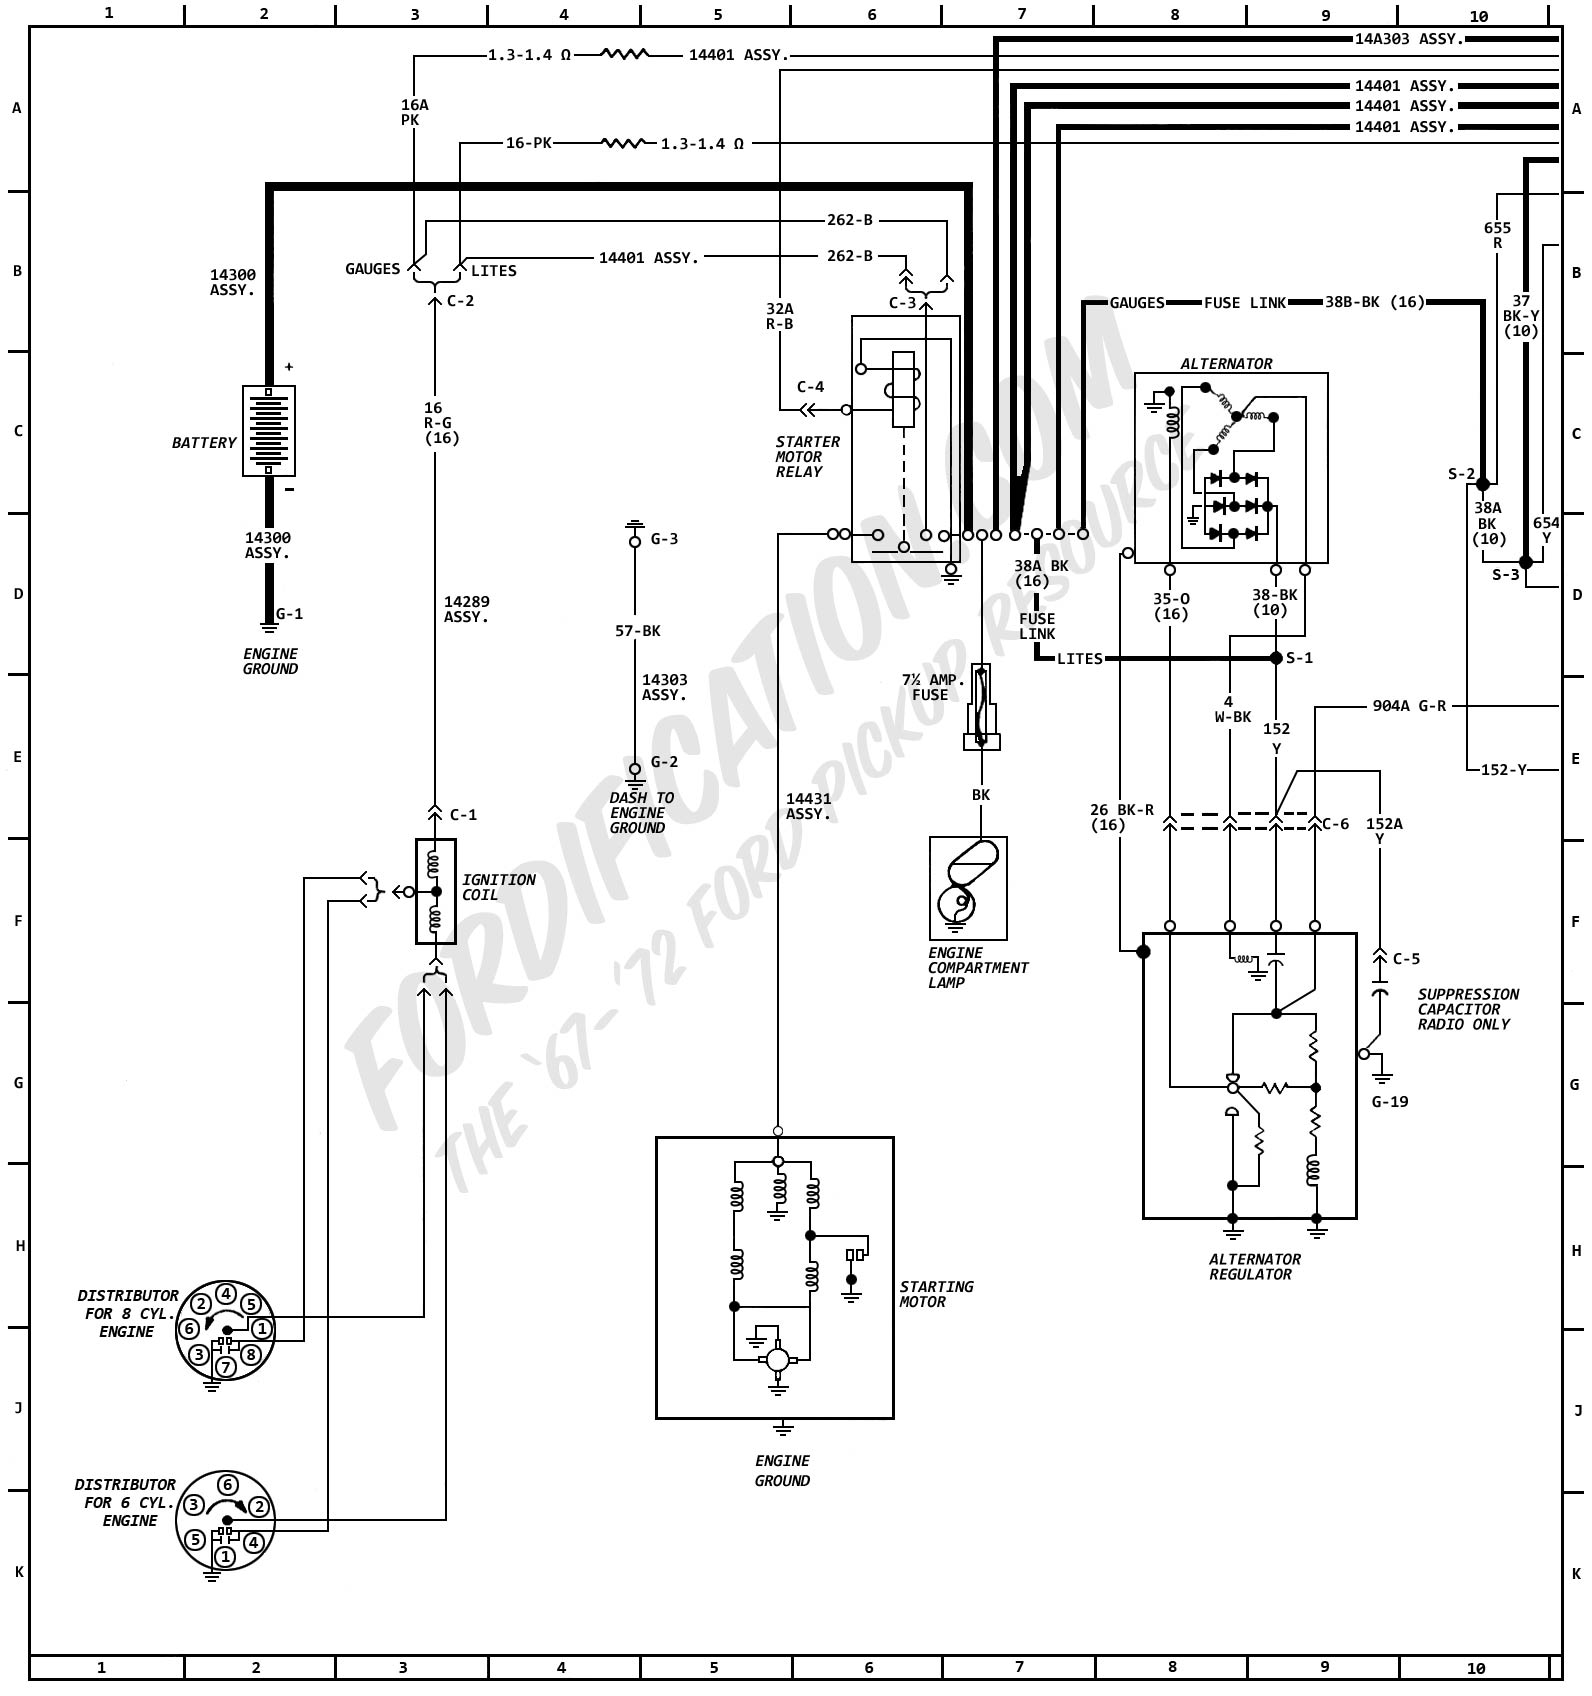 1972 ford truck wiring diagrams fordification com rh fordification com 1983 F250 Engine Wiring Diagram 2012 F 250 Wiring Diagrams